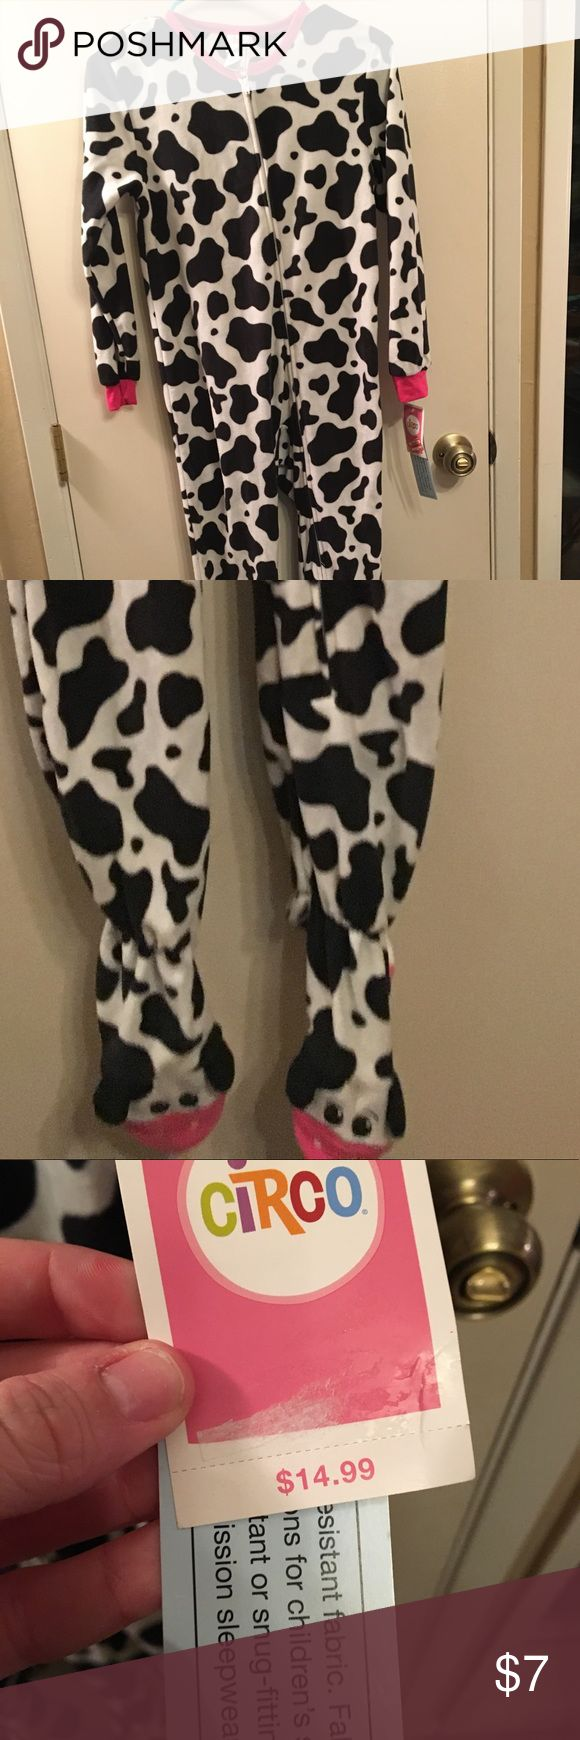 NWT Cow Print PJ Onsie • BRAND NEW - Cow PJ Onesie. • Size Girls M. • Cow Print with Pink, and cows on feet. • Super cute & soft. • Let me know if you have any questions - bundle & save! 🐮 • Reasonable offers are welcome. Circo Pajamas Pajama Sets